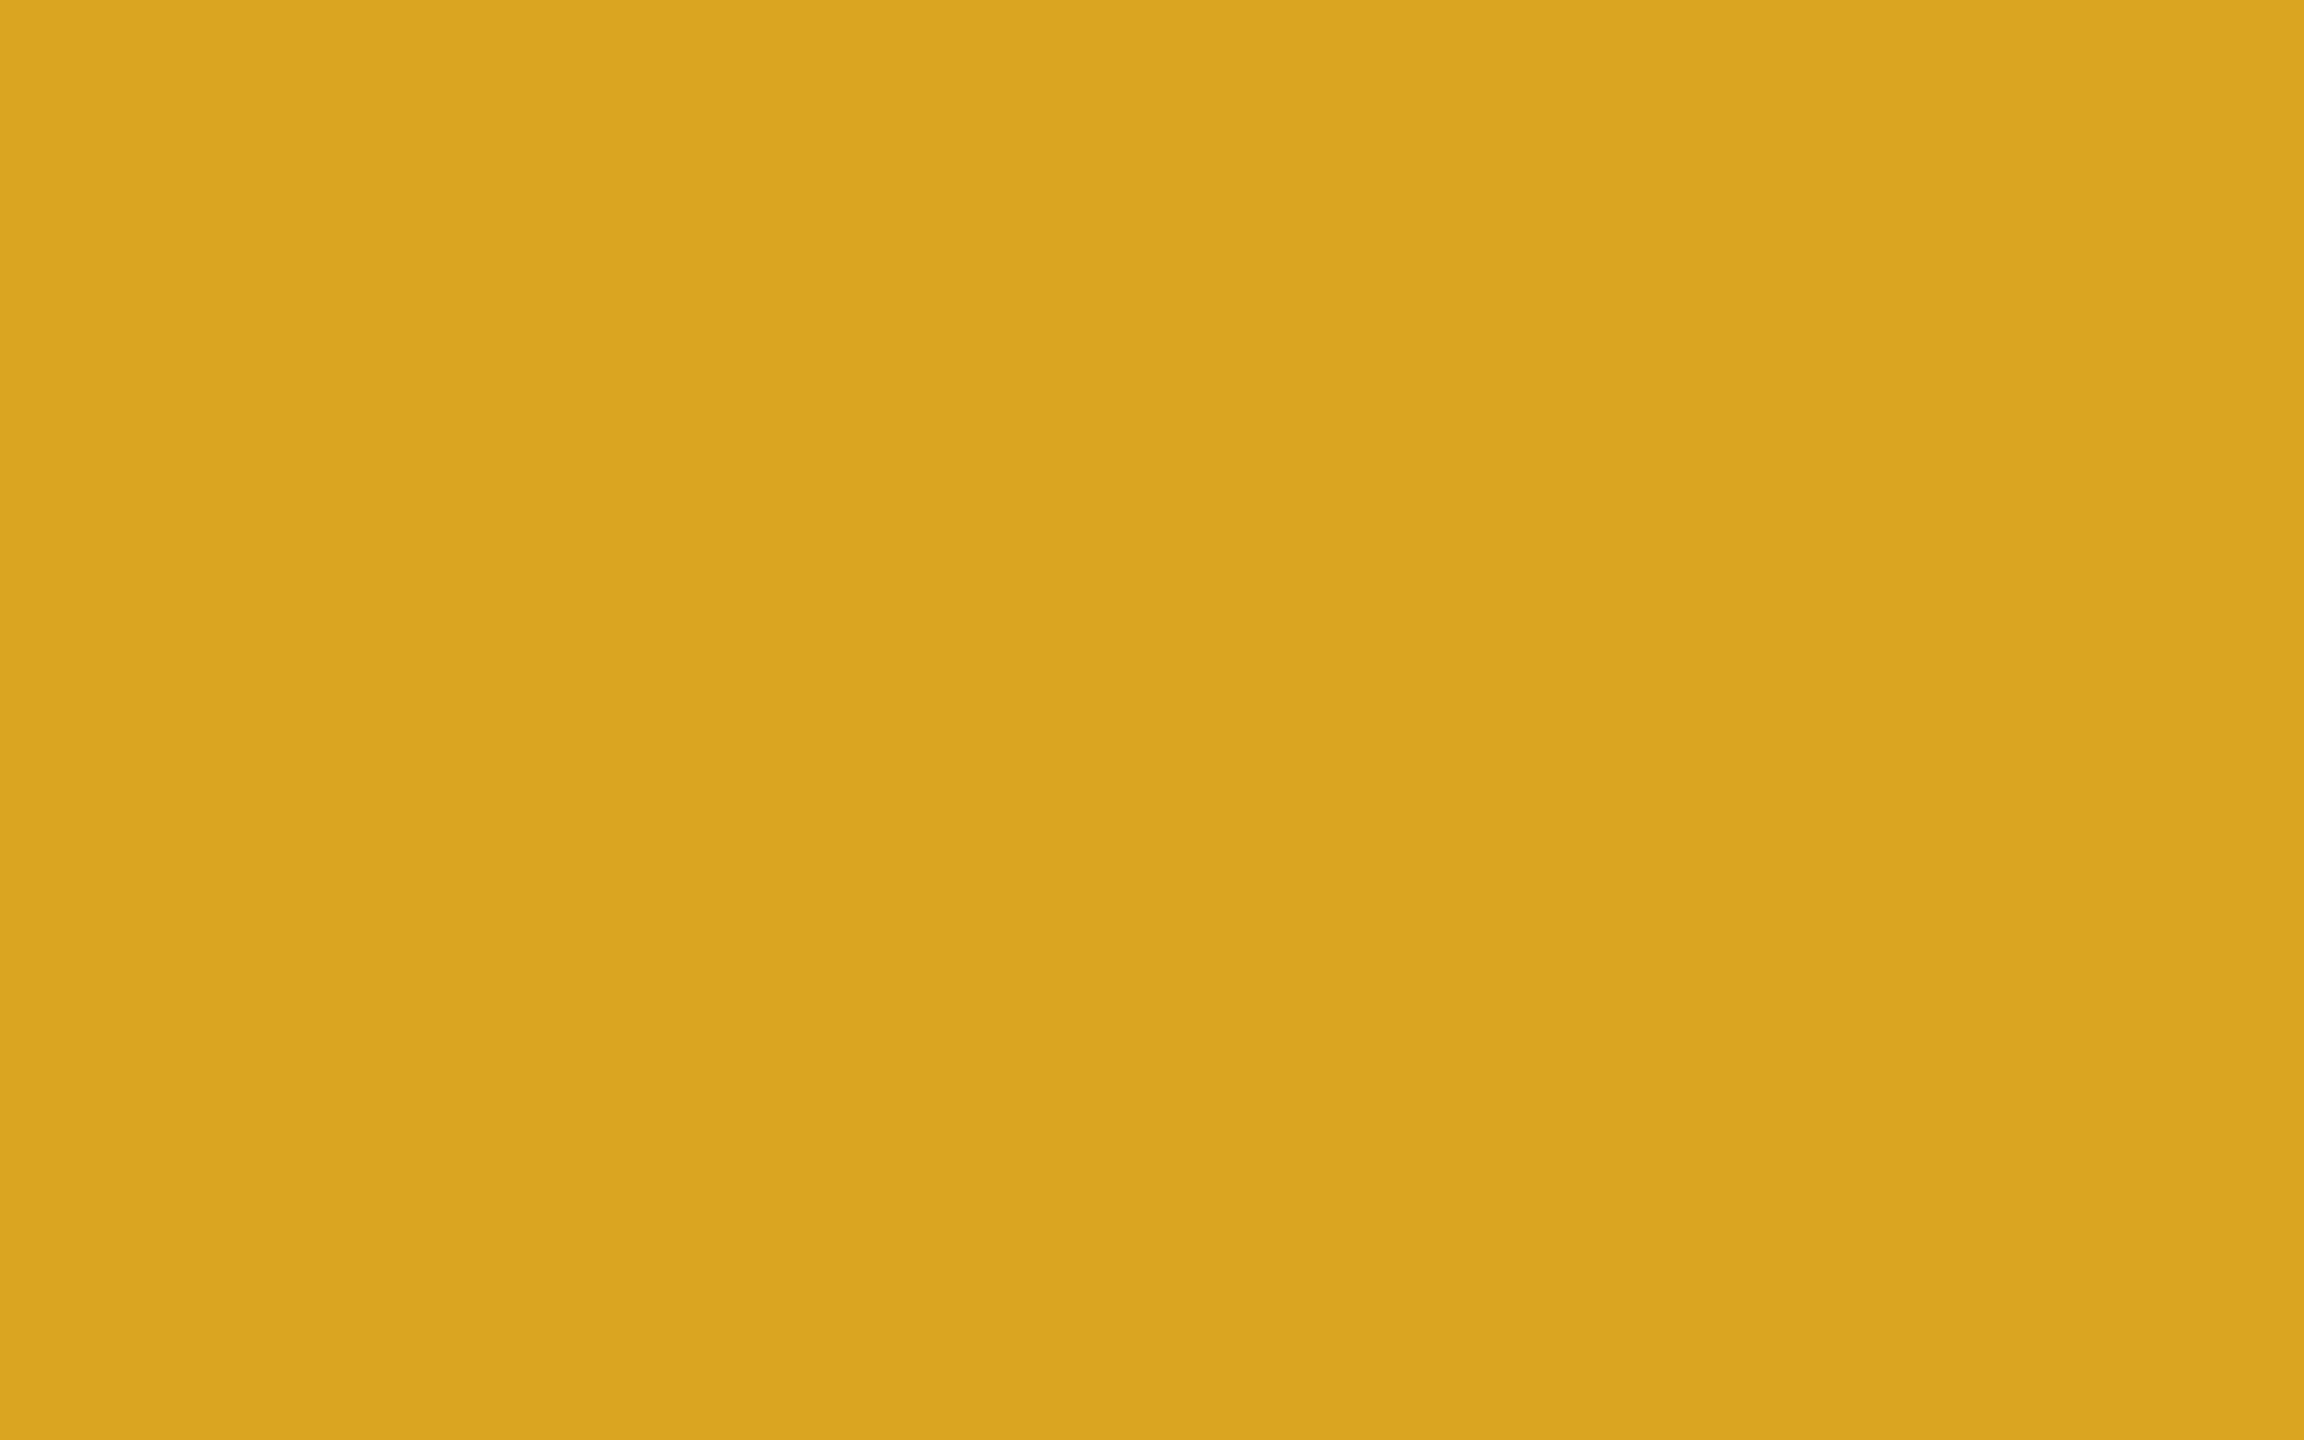 2304x1440 Goldenrod Solid Color Background